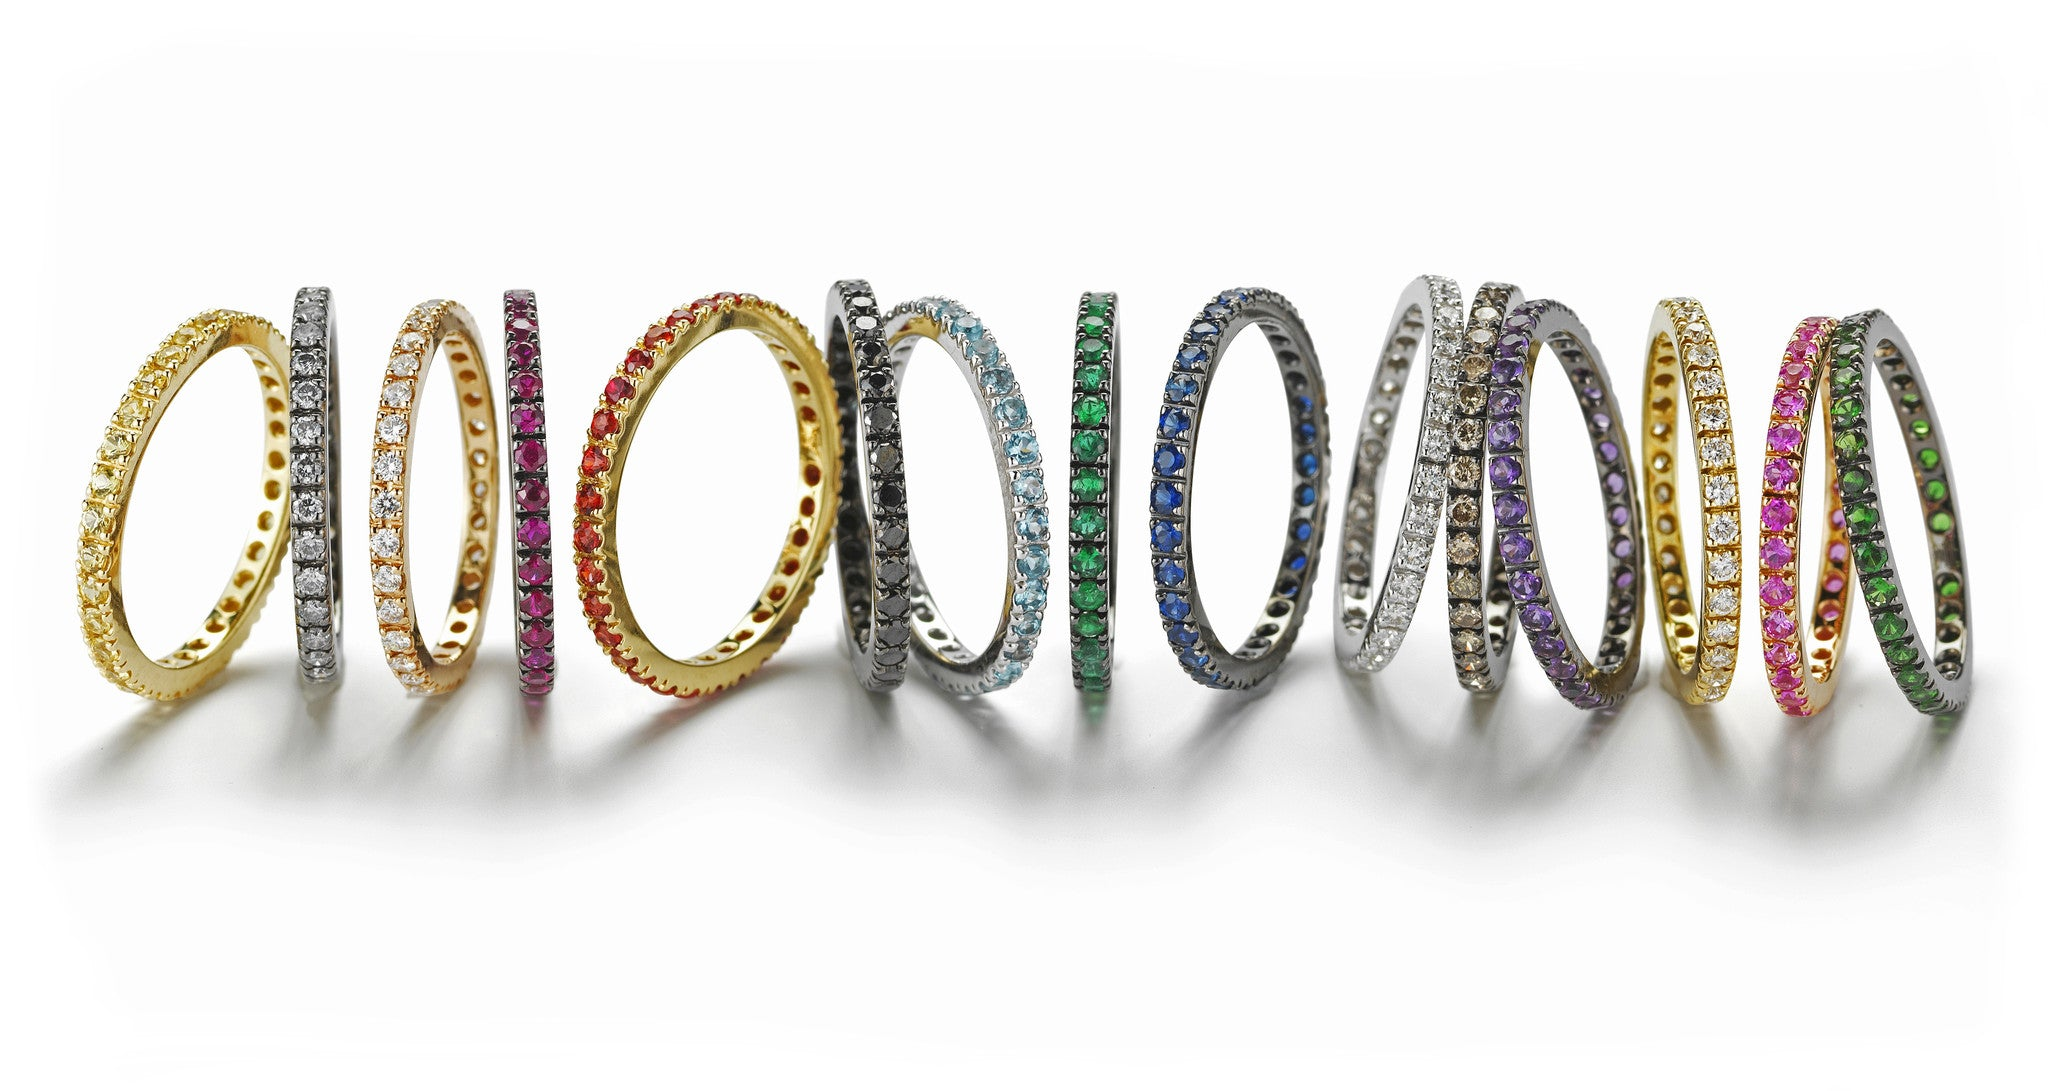 A-FURST-FRANCE-MULTICOLOR-ETERNITY-BAND-RINGS